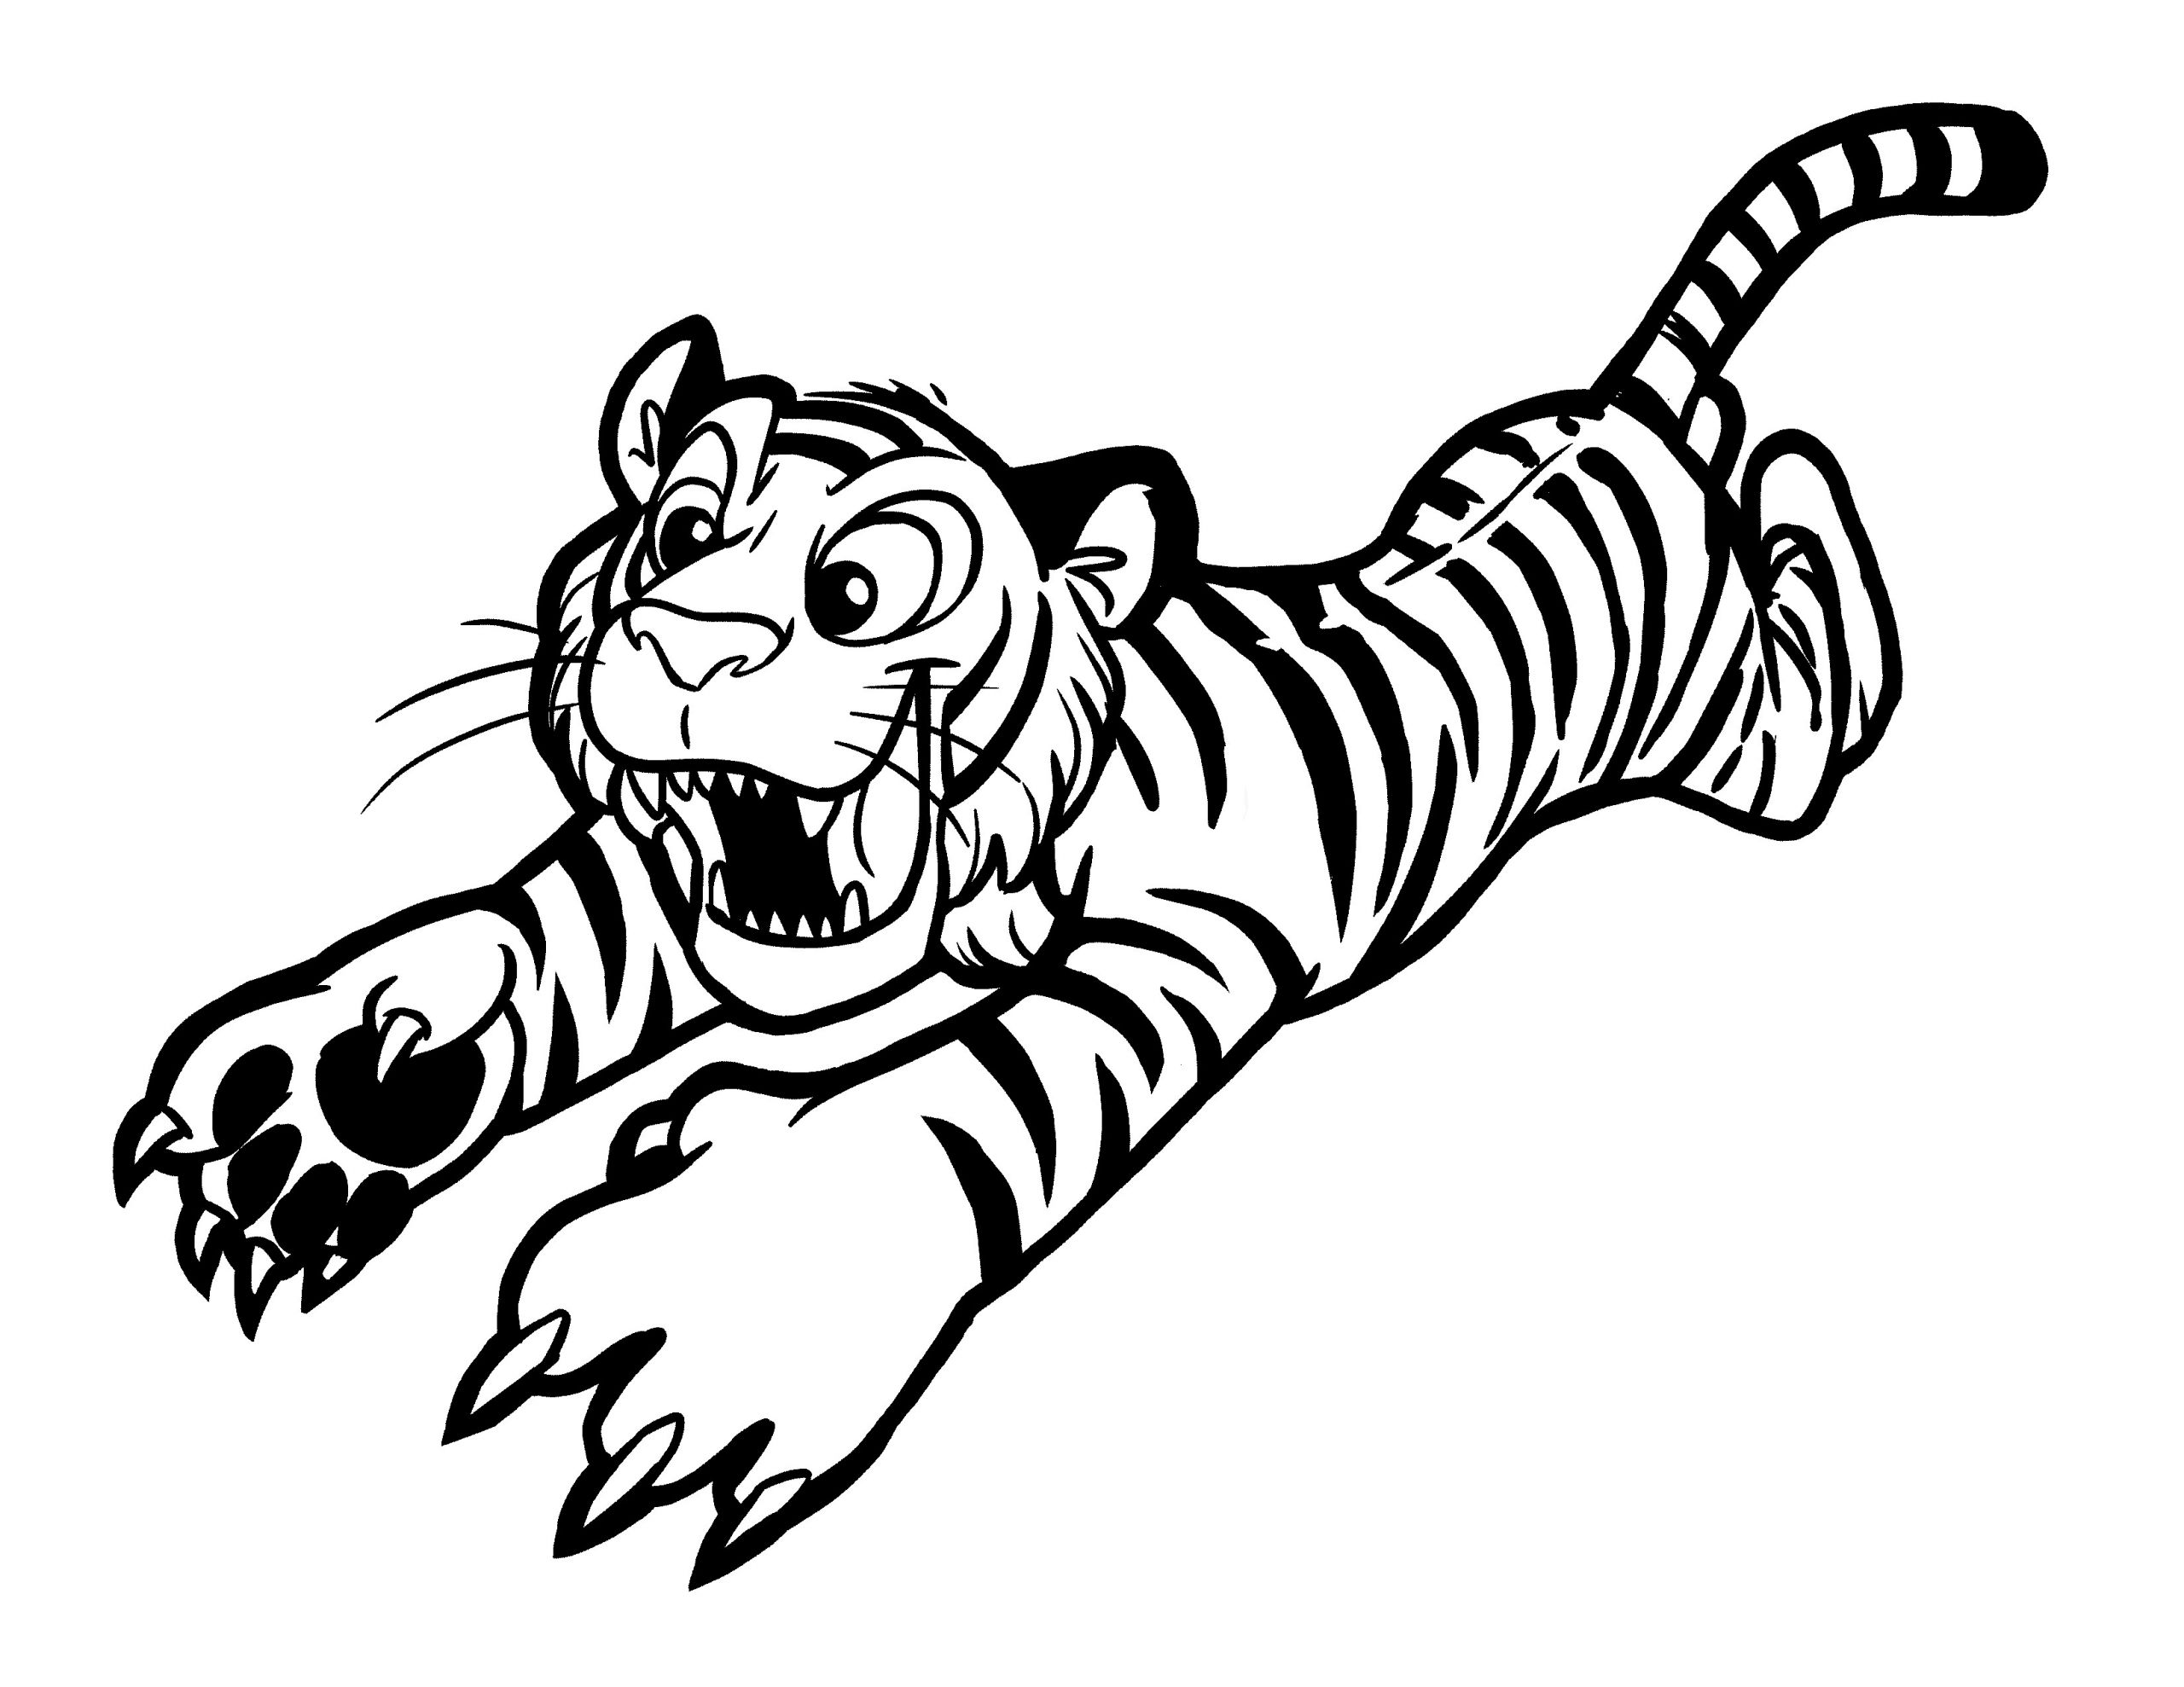 Baby Tiger Coloring Pages  Free Printable Tiger Coloring Pages For Kids